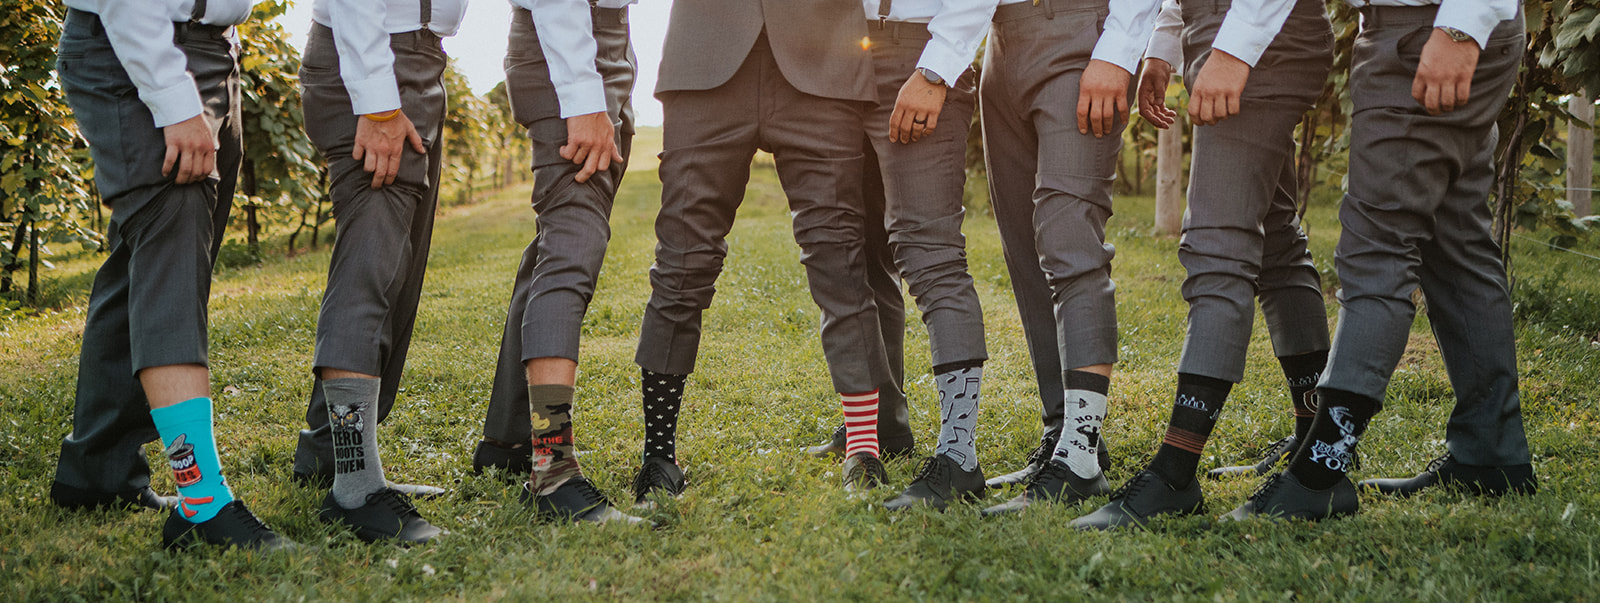 overthevineswisconsinwedding_0864.jpg